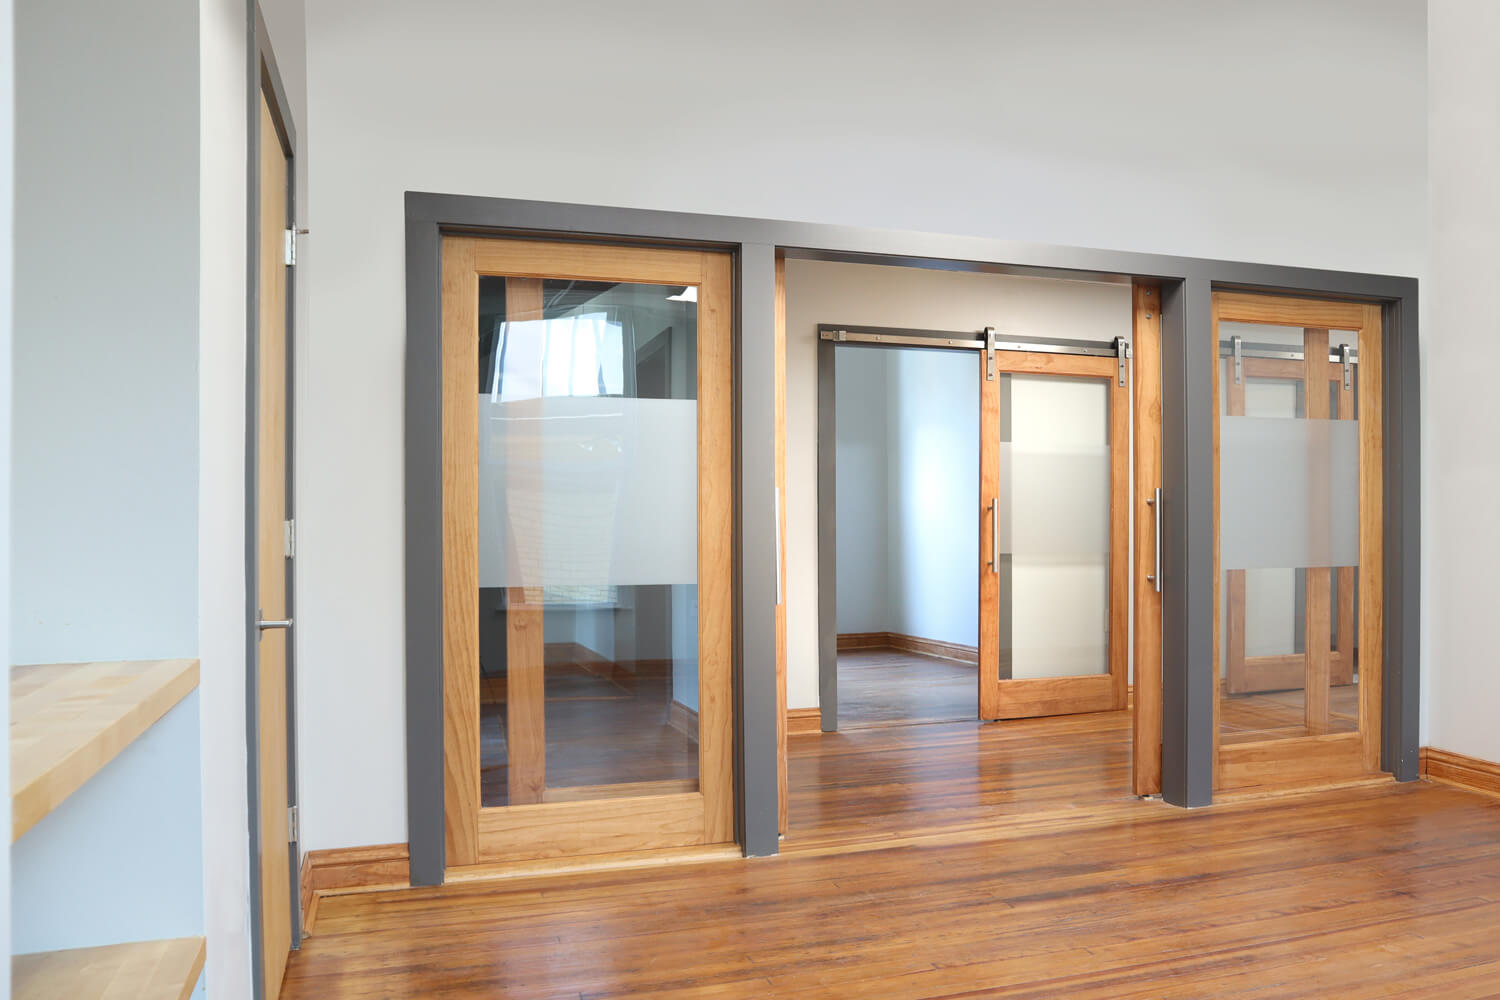 Wealth Management Partners - Sliding Barn Doors - Designed by Foshee Architecture